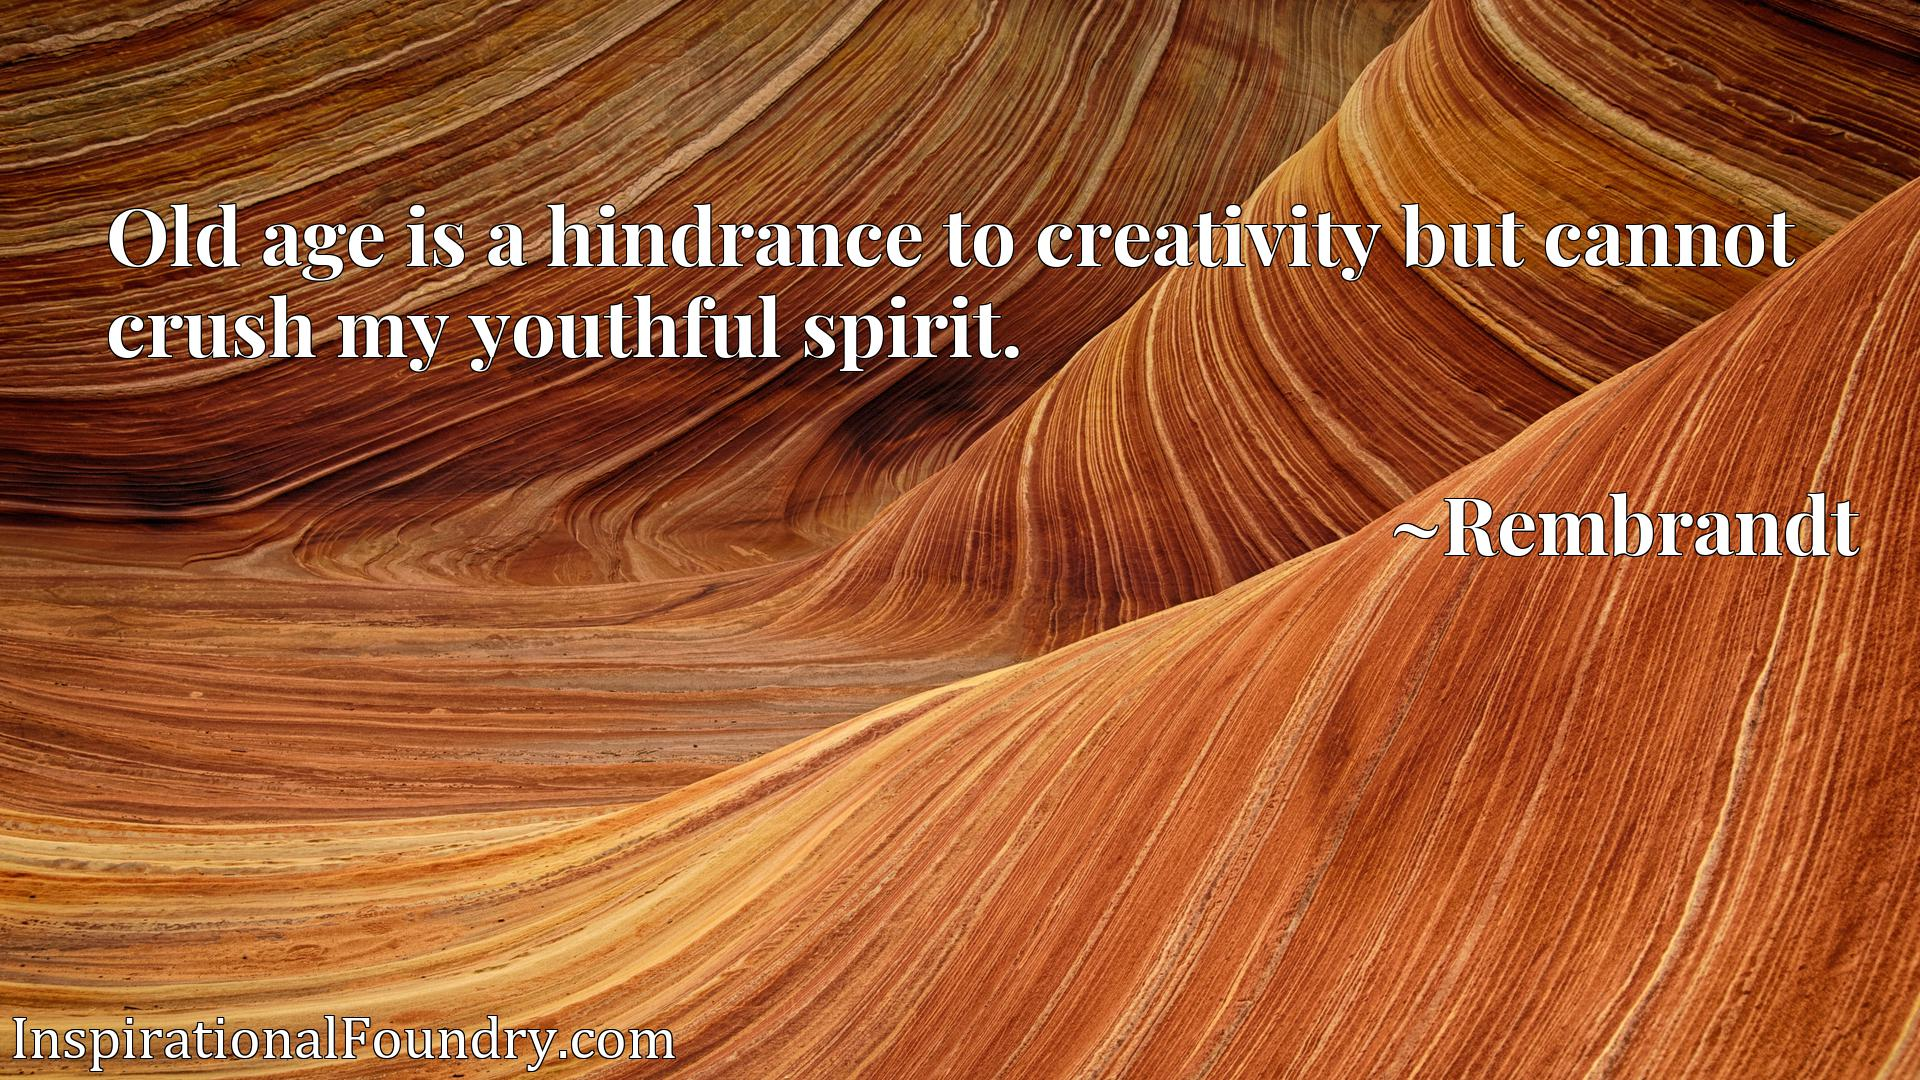 Old age is a hindrance to creativity but cannot crush my youthful spirit.